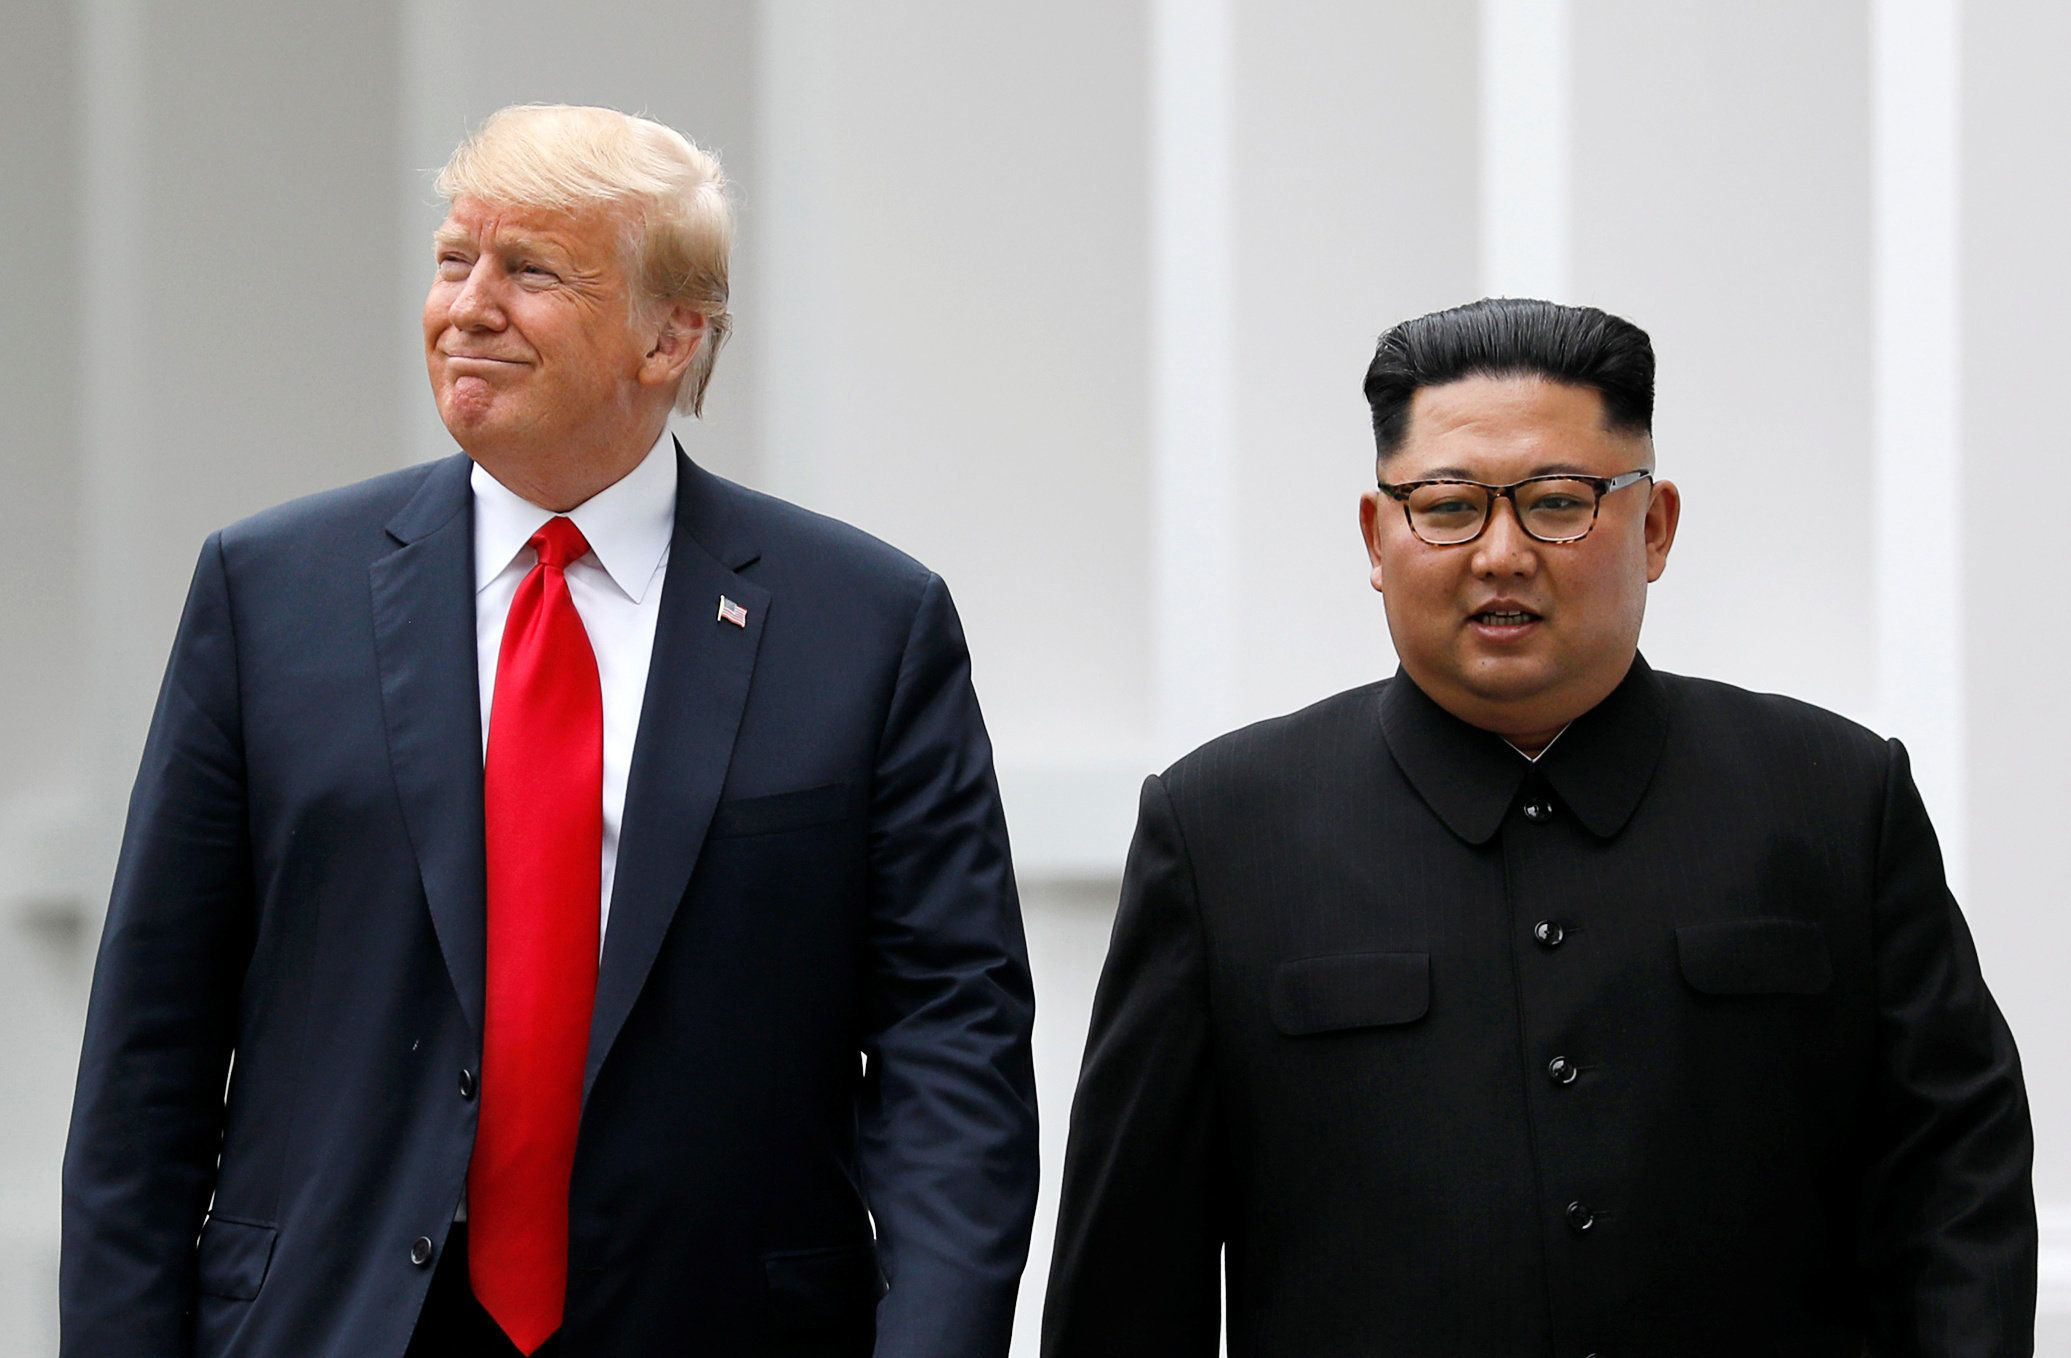 The uncertain legacy of the Singapore summit